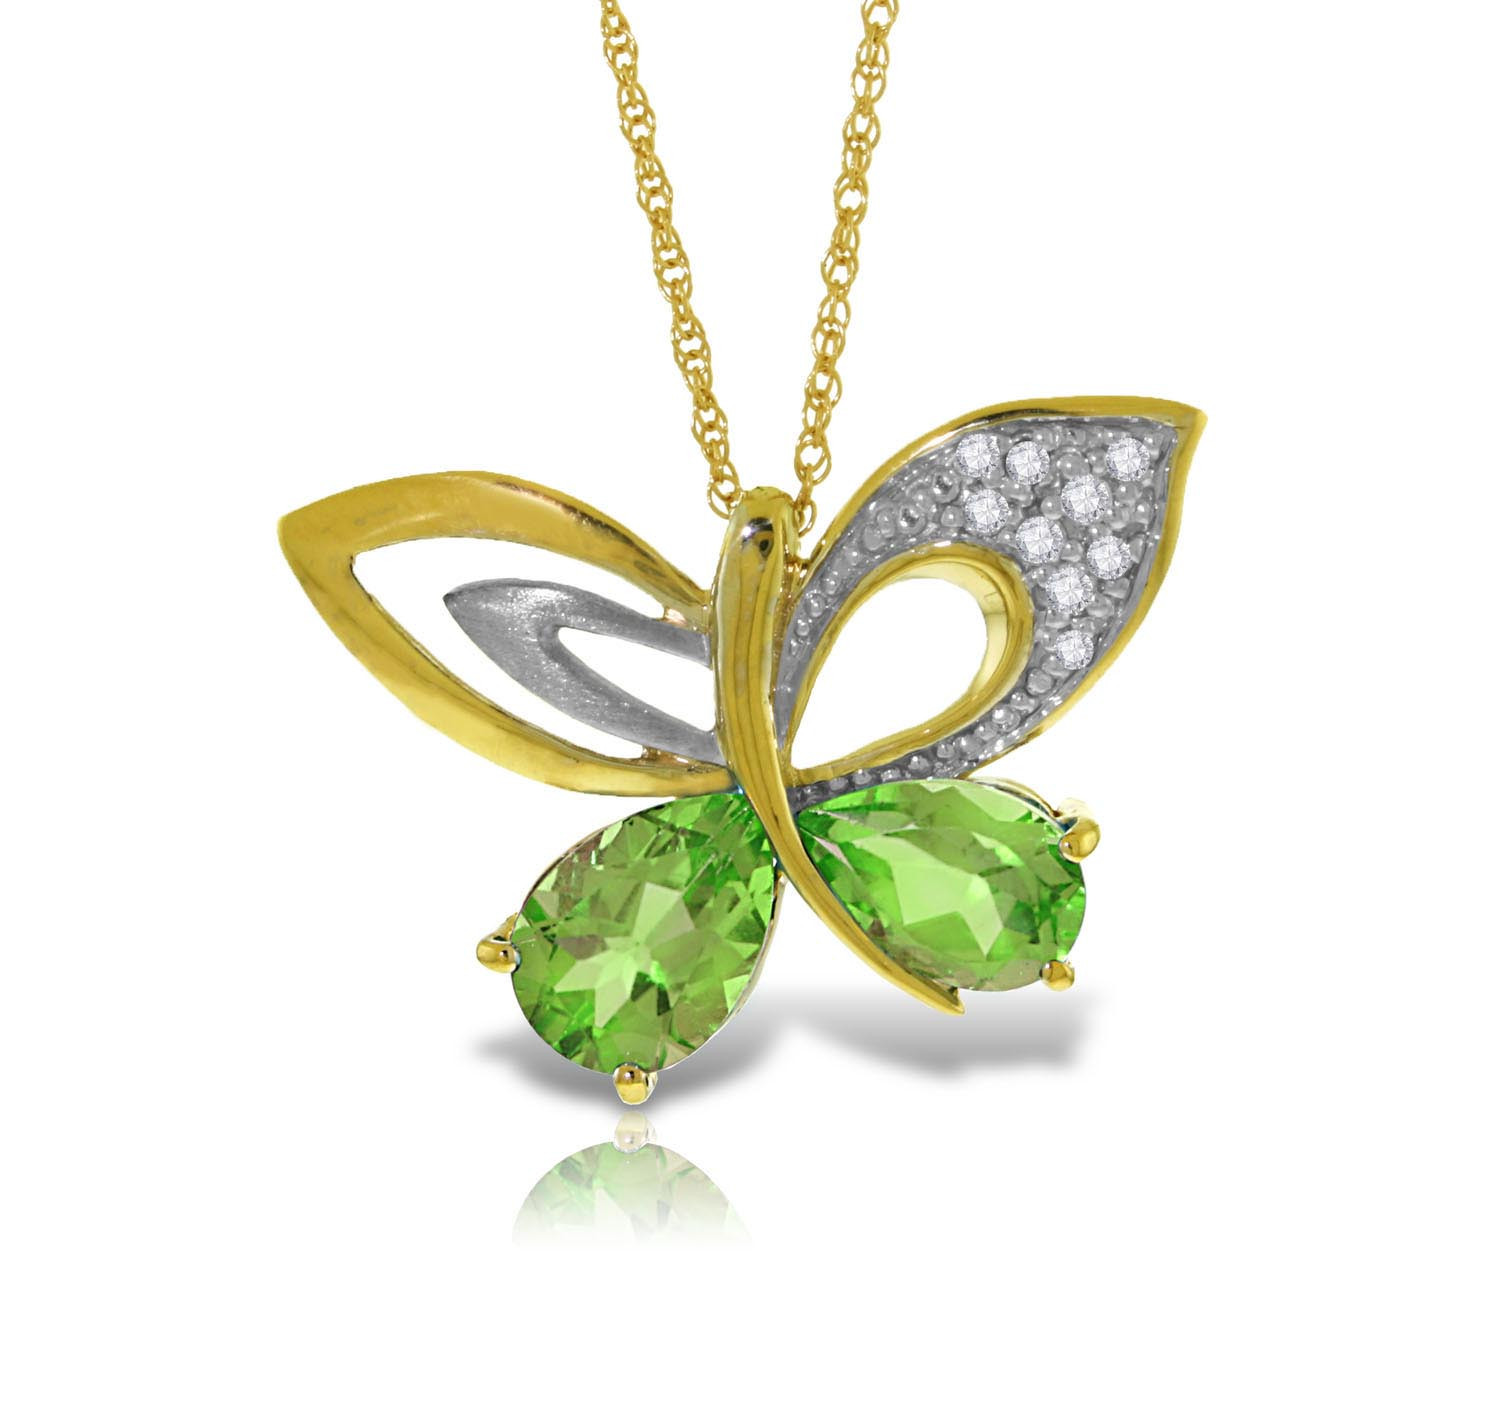 Peridot & Diamond Butterfly Pendant Necklace in 9ct Gold